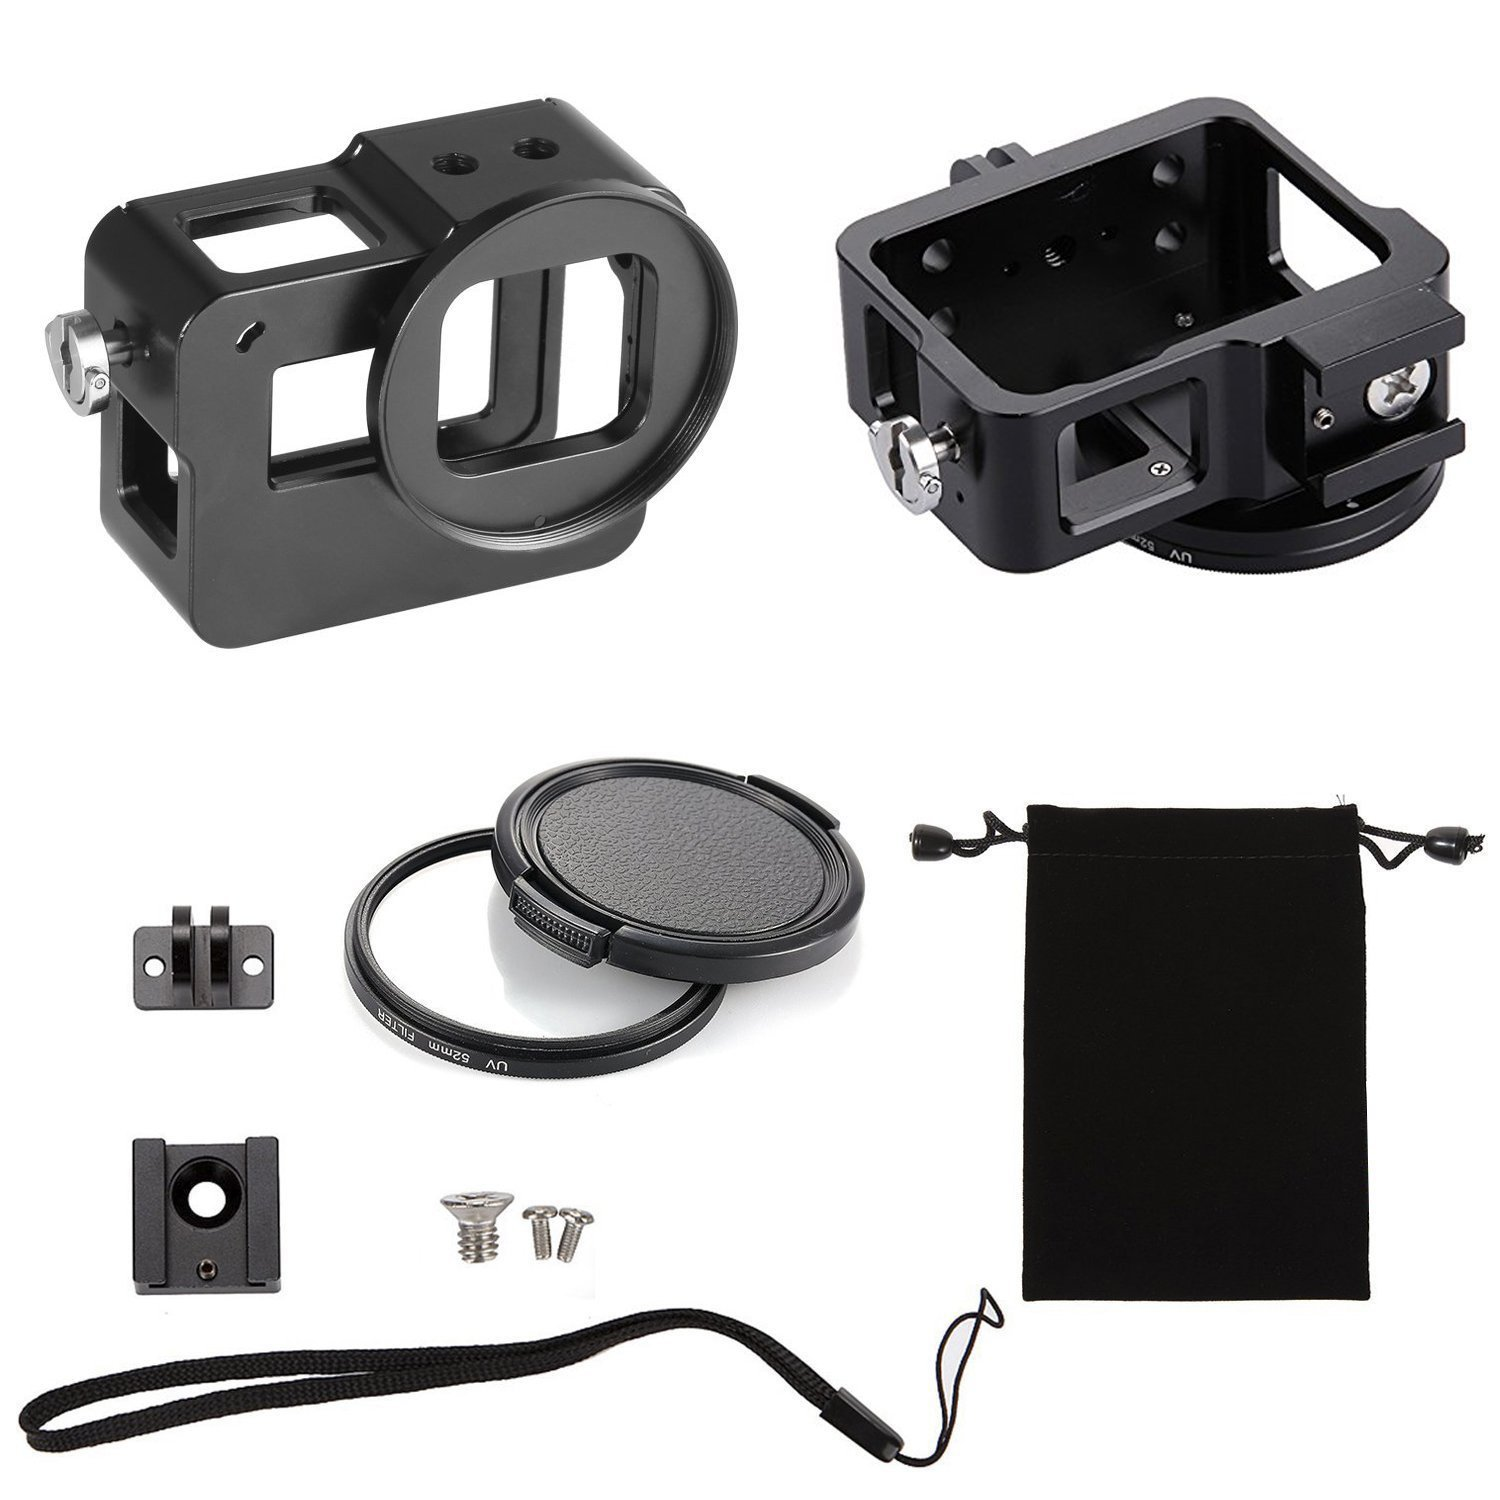 Best GoPro HERO 6/ 5 Action Sports Camera 100% CNC Aluminum Frame Protective Solid Shell Skeleton Housing Case Mount With Standard UV 52mm Filter Black (Black)